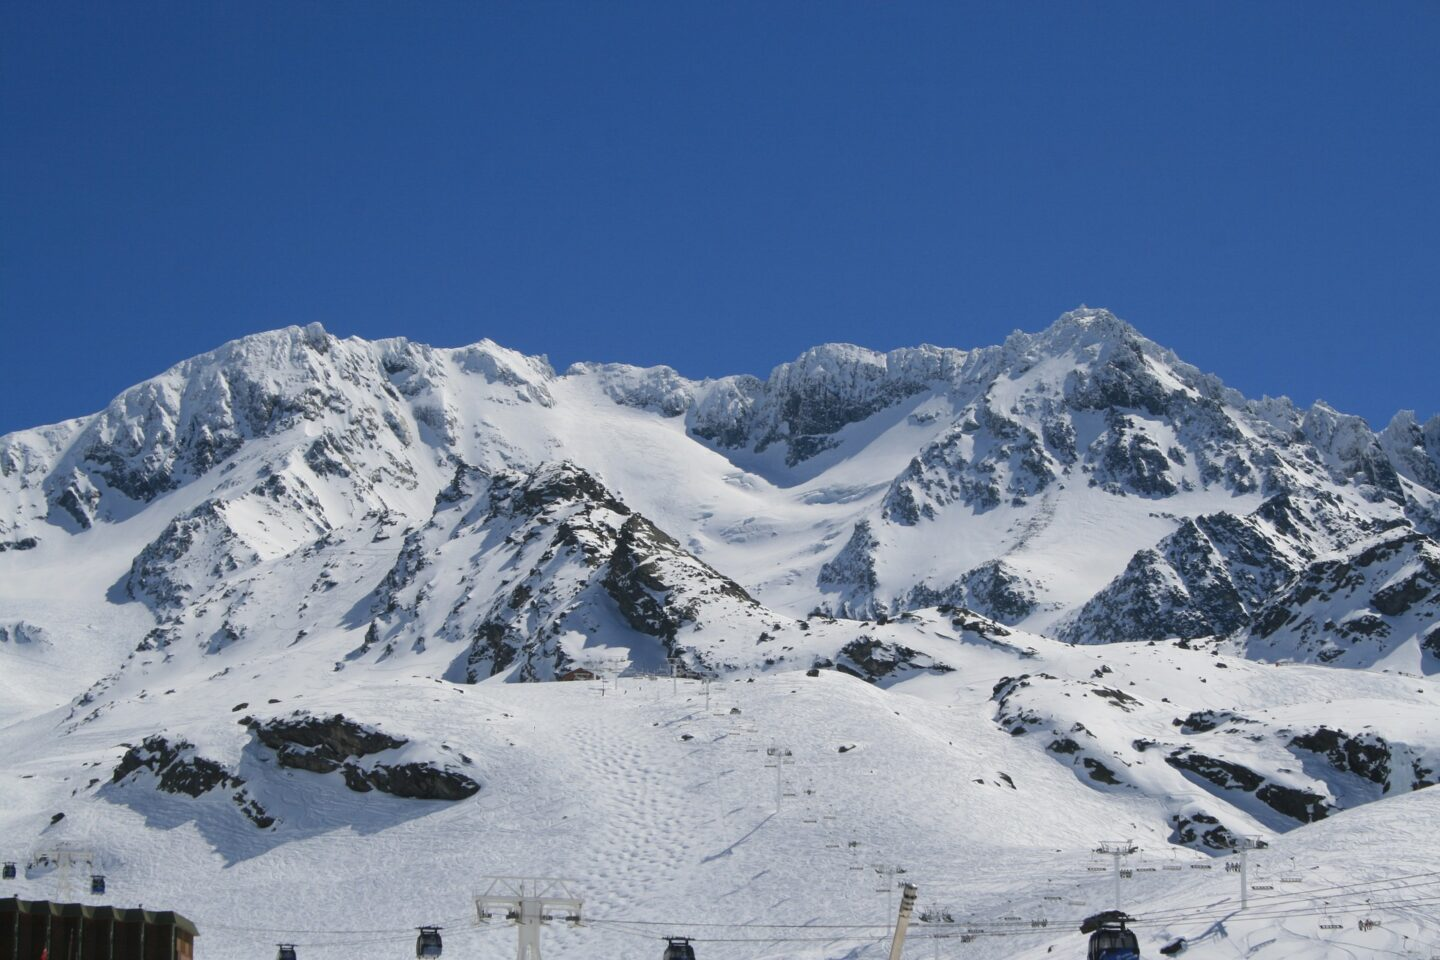 Interesting things and activities to do in Val Thorens